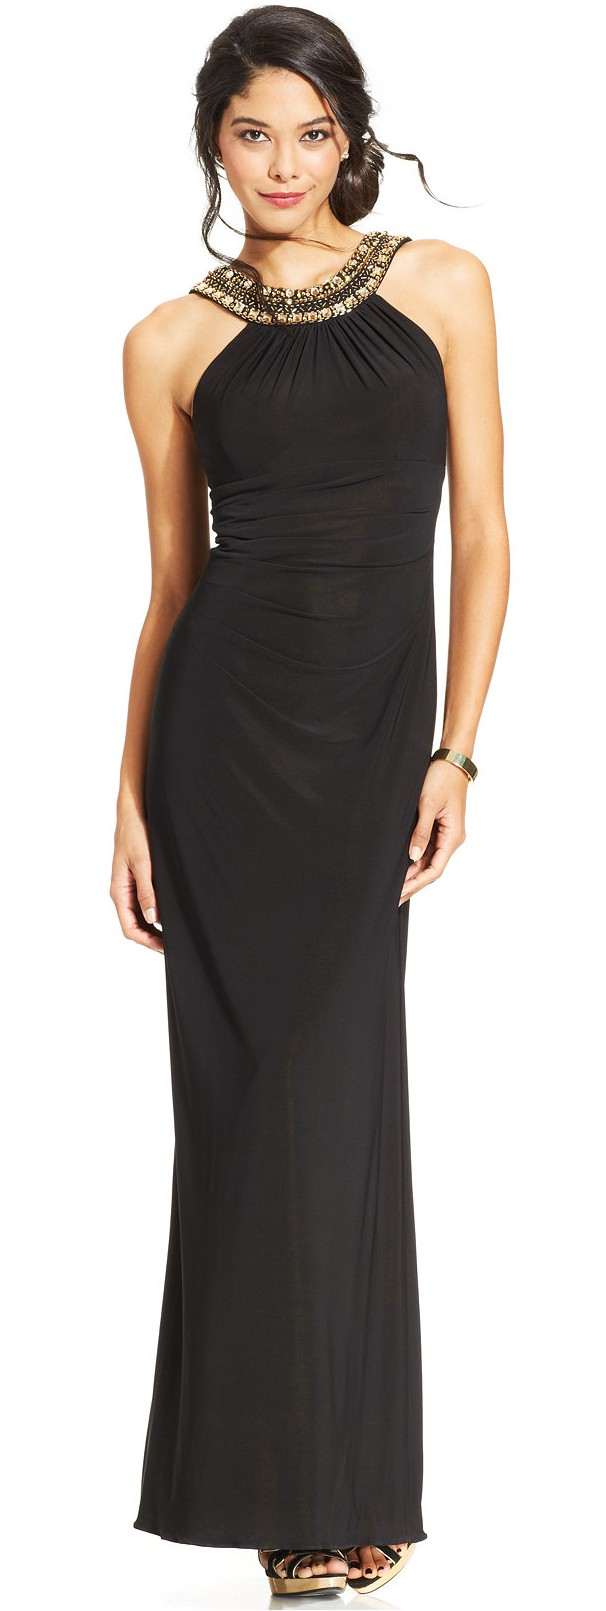 Xscape @ Macys €137.81 - Embellished Ruched Halter Gown http://mcys.co/1GpGO6z